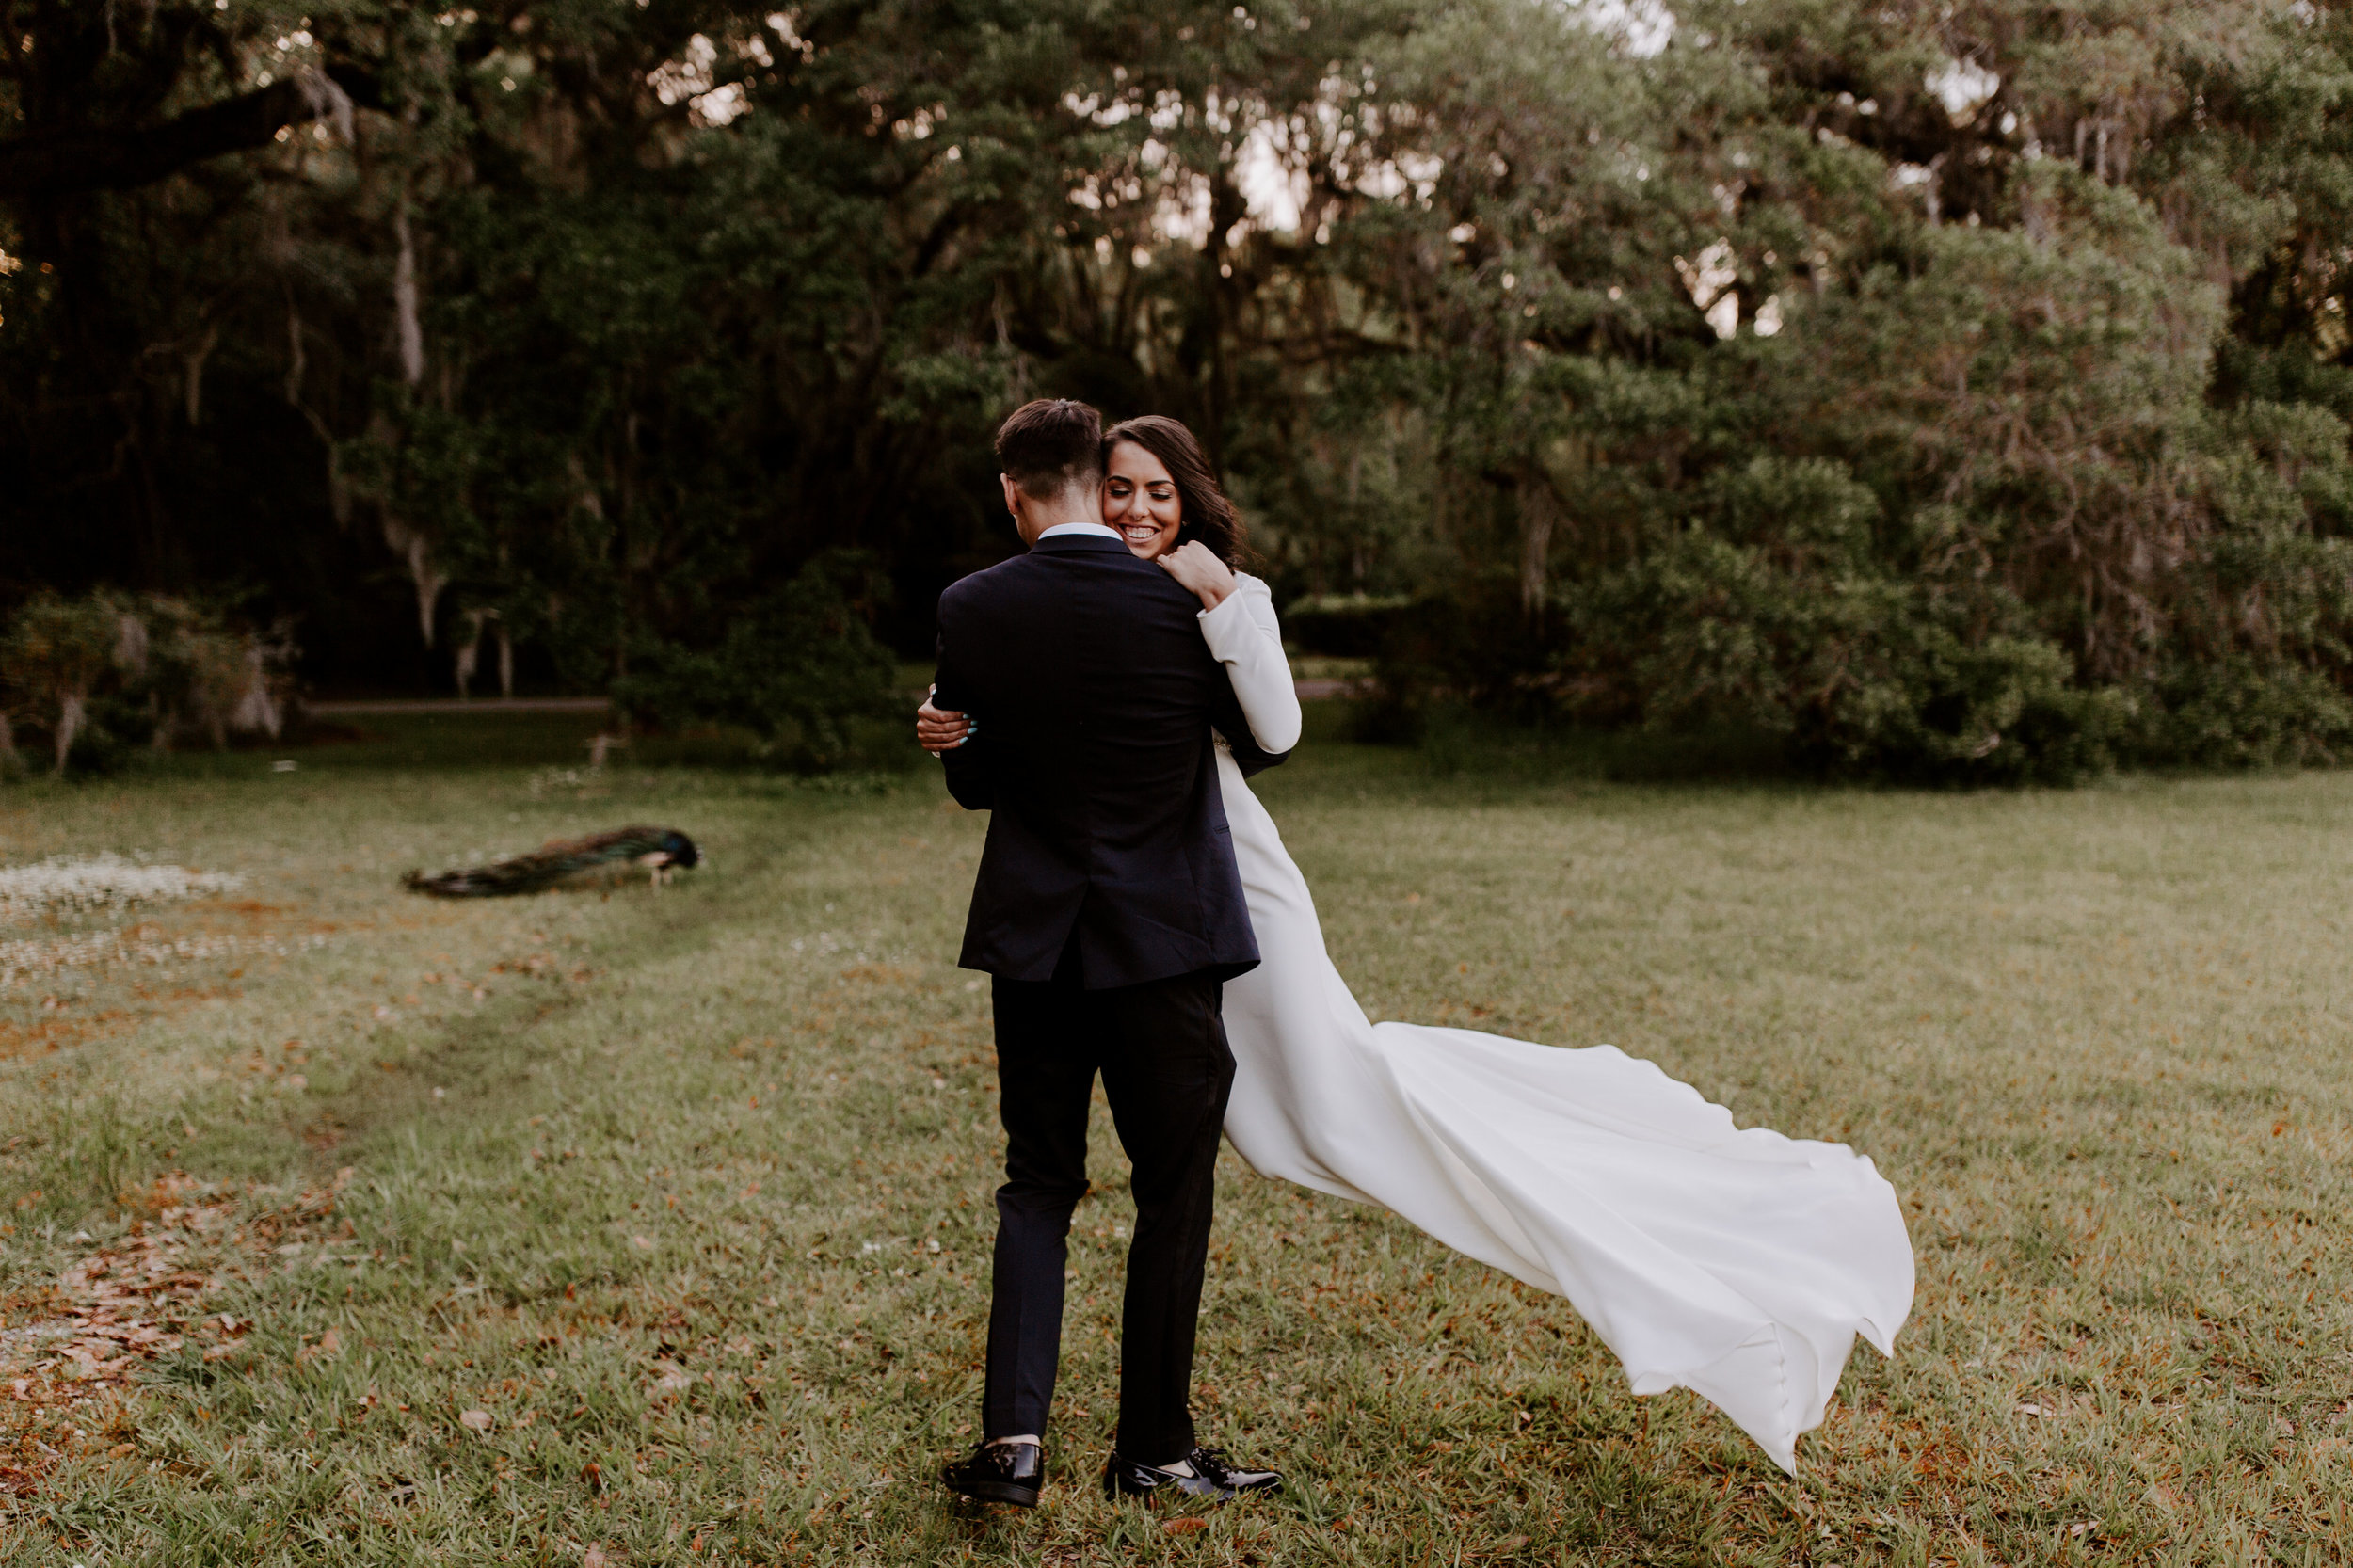 Kayla & Benji wanted their ceremony to feel intimate and really highlight the love they share. The couple decided to elope, with only their immediate family present. Kayla found Magnolia Plantation in Charleston, SC, on Pinterest and immediately knew it was the perfect spot. The tall oak trees covered in Spanish moss gave the venue such a romantic feel, and the couple was able to achieve the sweet fairytale vibe they'd been searching for.